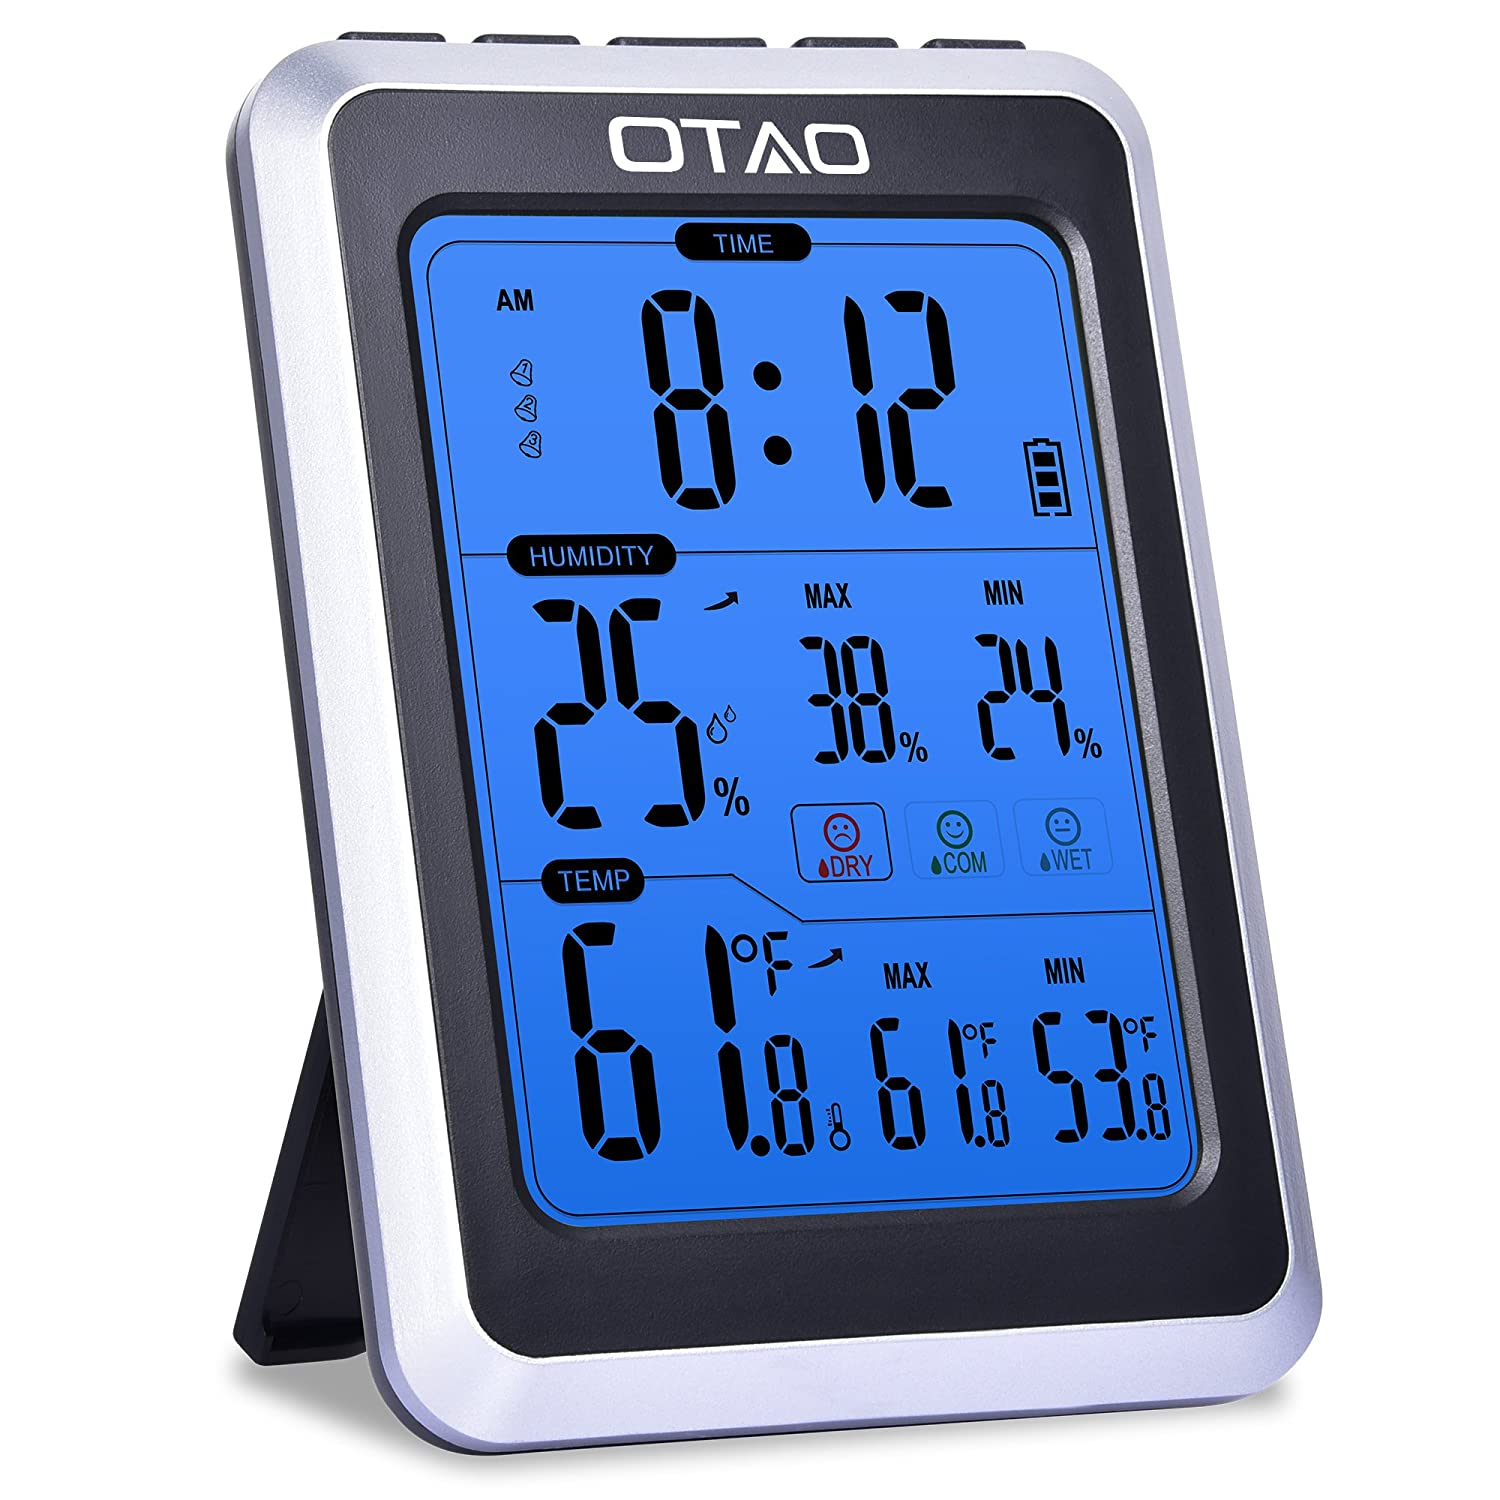 OTAO Digital Hygrometer Indoor Thermometer Humidity Meter Temperature Humidity Gauge Alarm Clock Voice Control Backlight Room Thermometer Humidity Monitor OT-SDJ-01